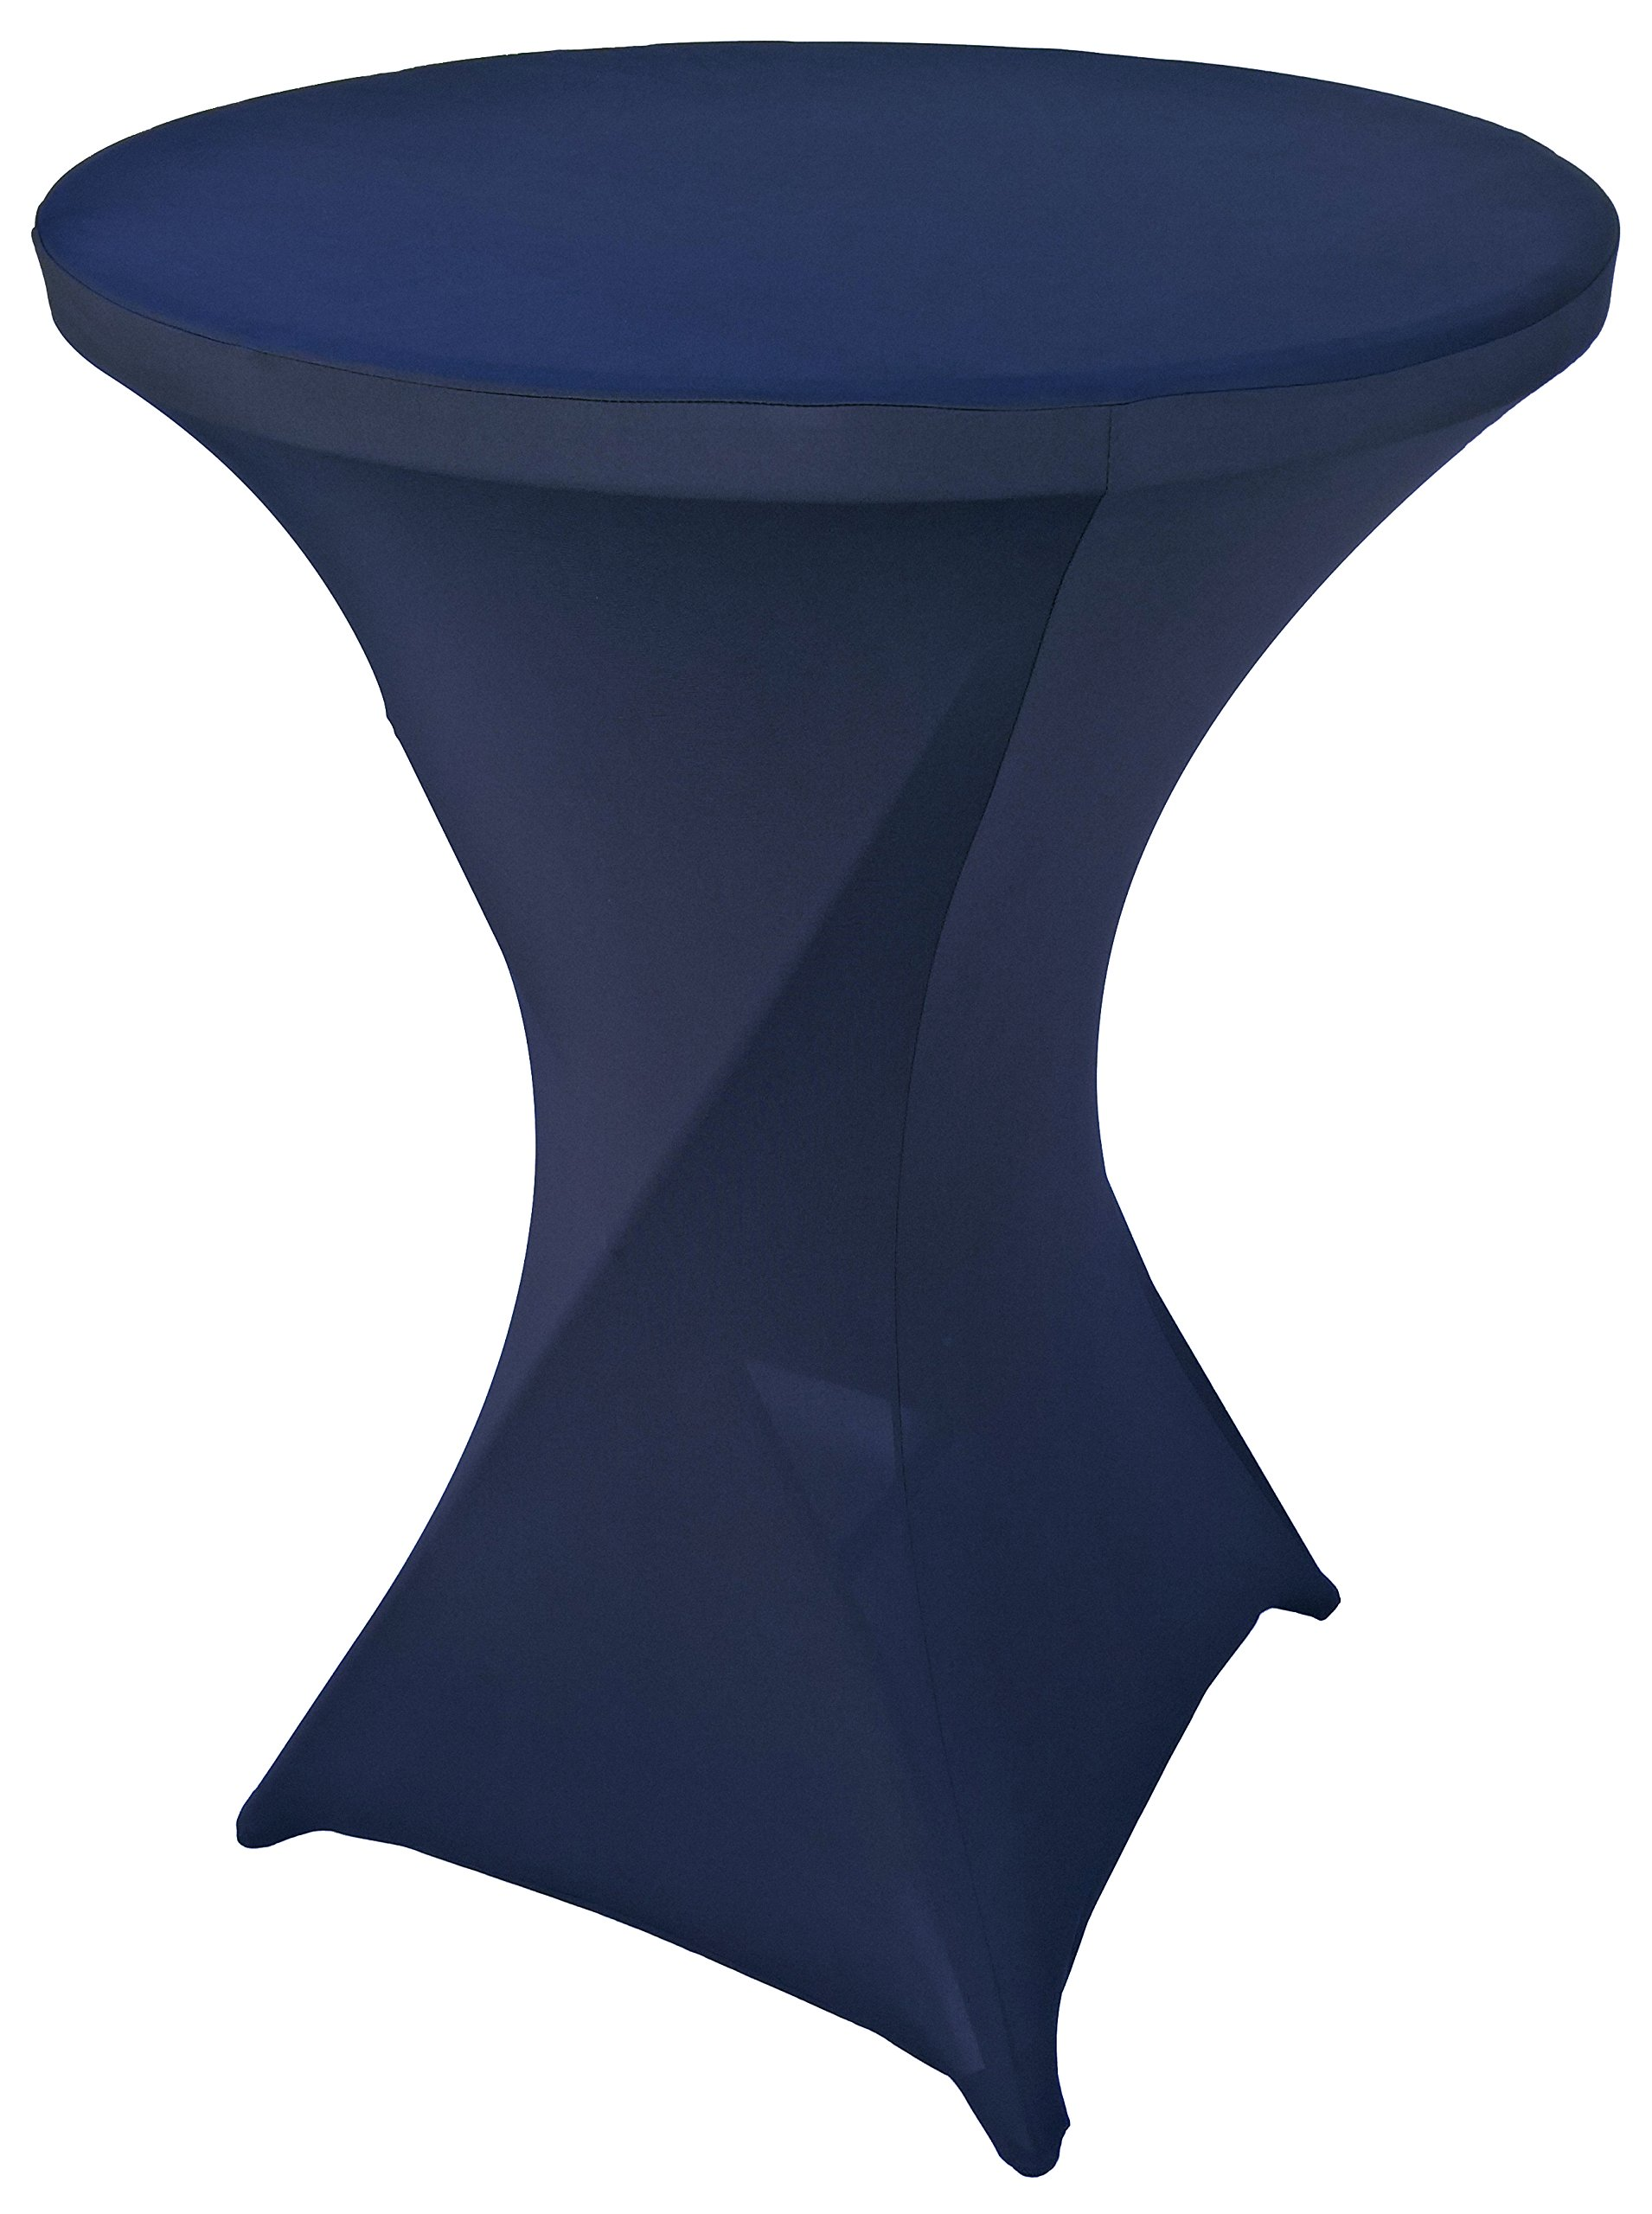 Goldstream Point Navy Blue 32 Inch Round x 43 Inch Tall Spandex Cocktail Tablecloth Folding Cover Stretch